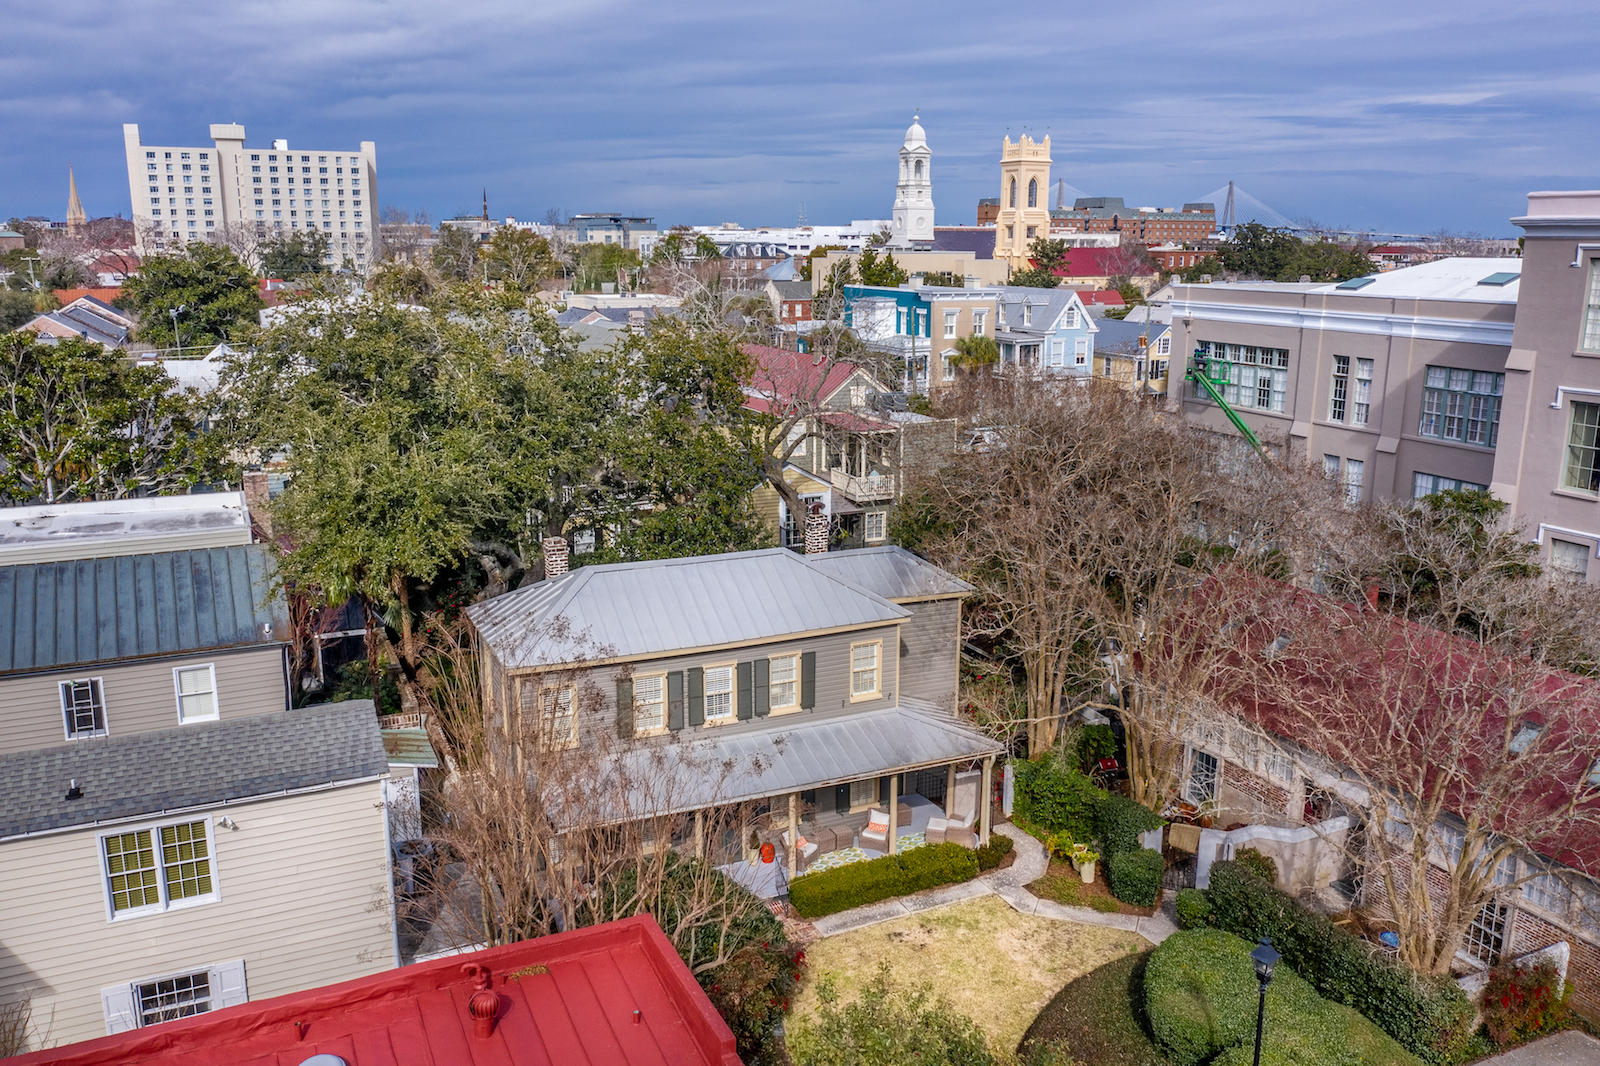 Crafts House Homes For Sale - 125 1/2 Queen, Charleston, SC - 1